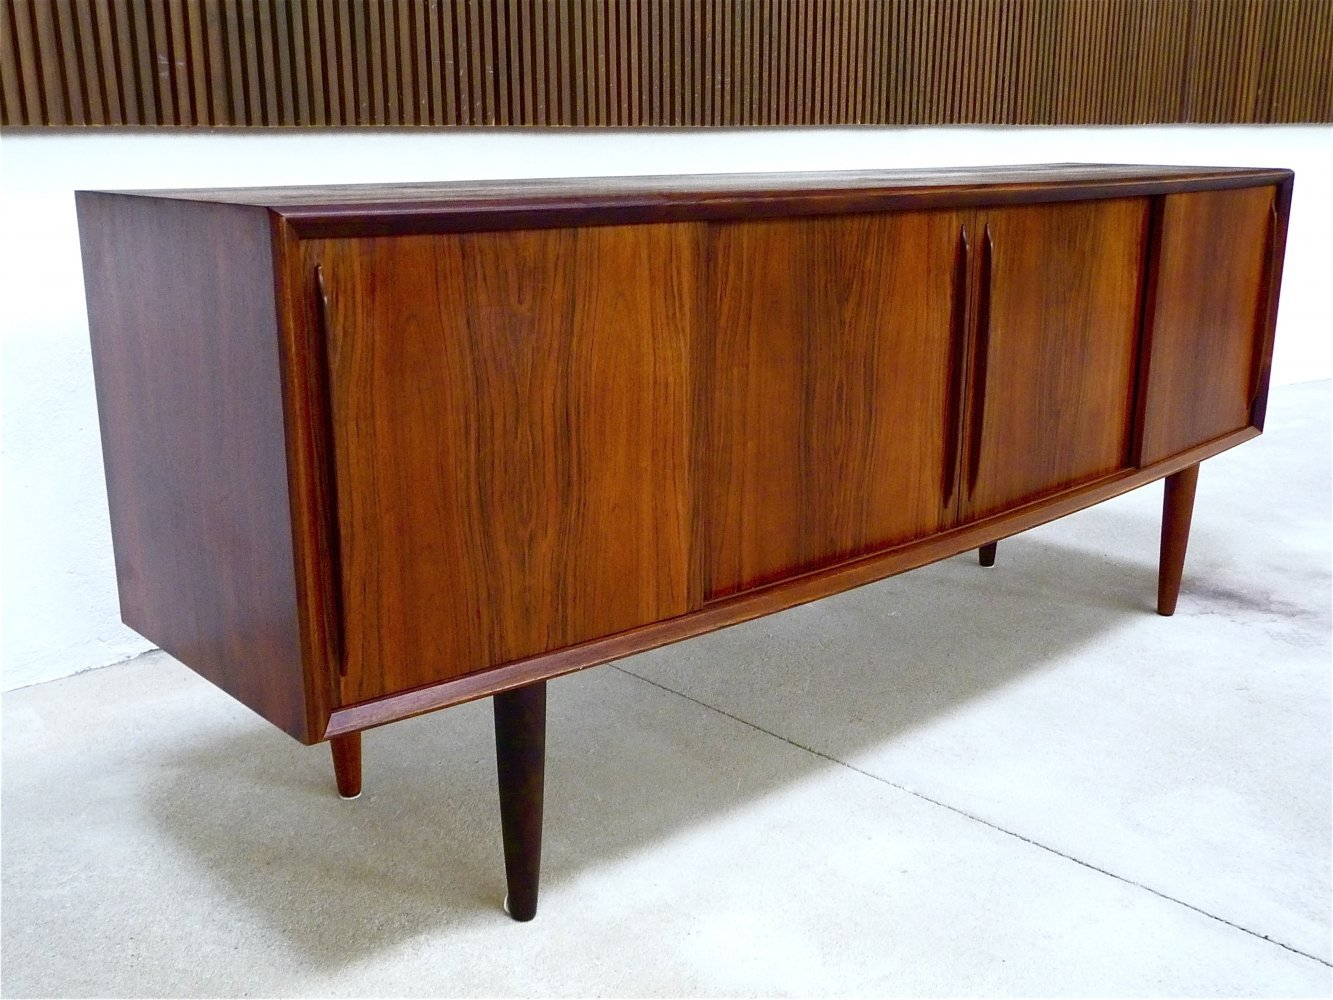 Danish Curved Front Sideboard by Svend Aage Madsen for HP Hansen, 1960s